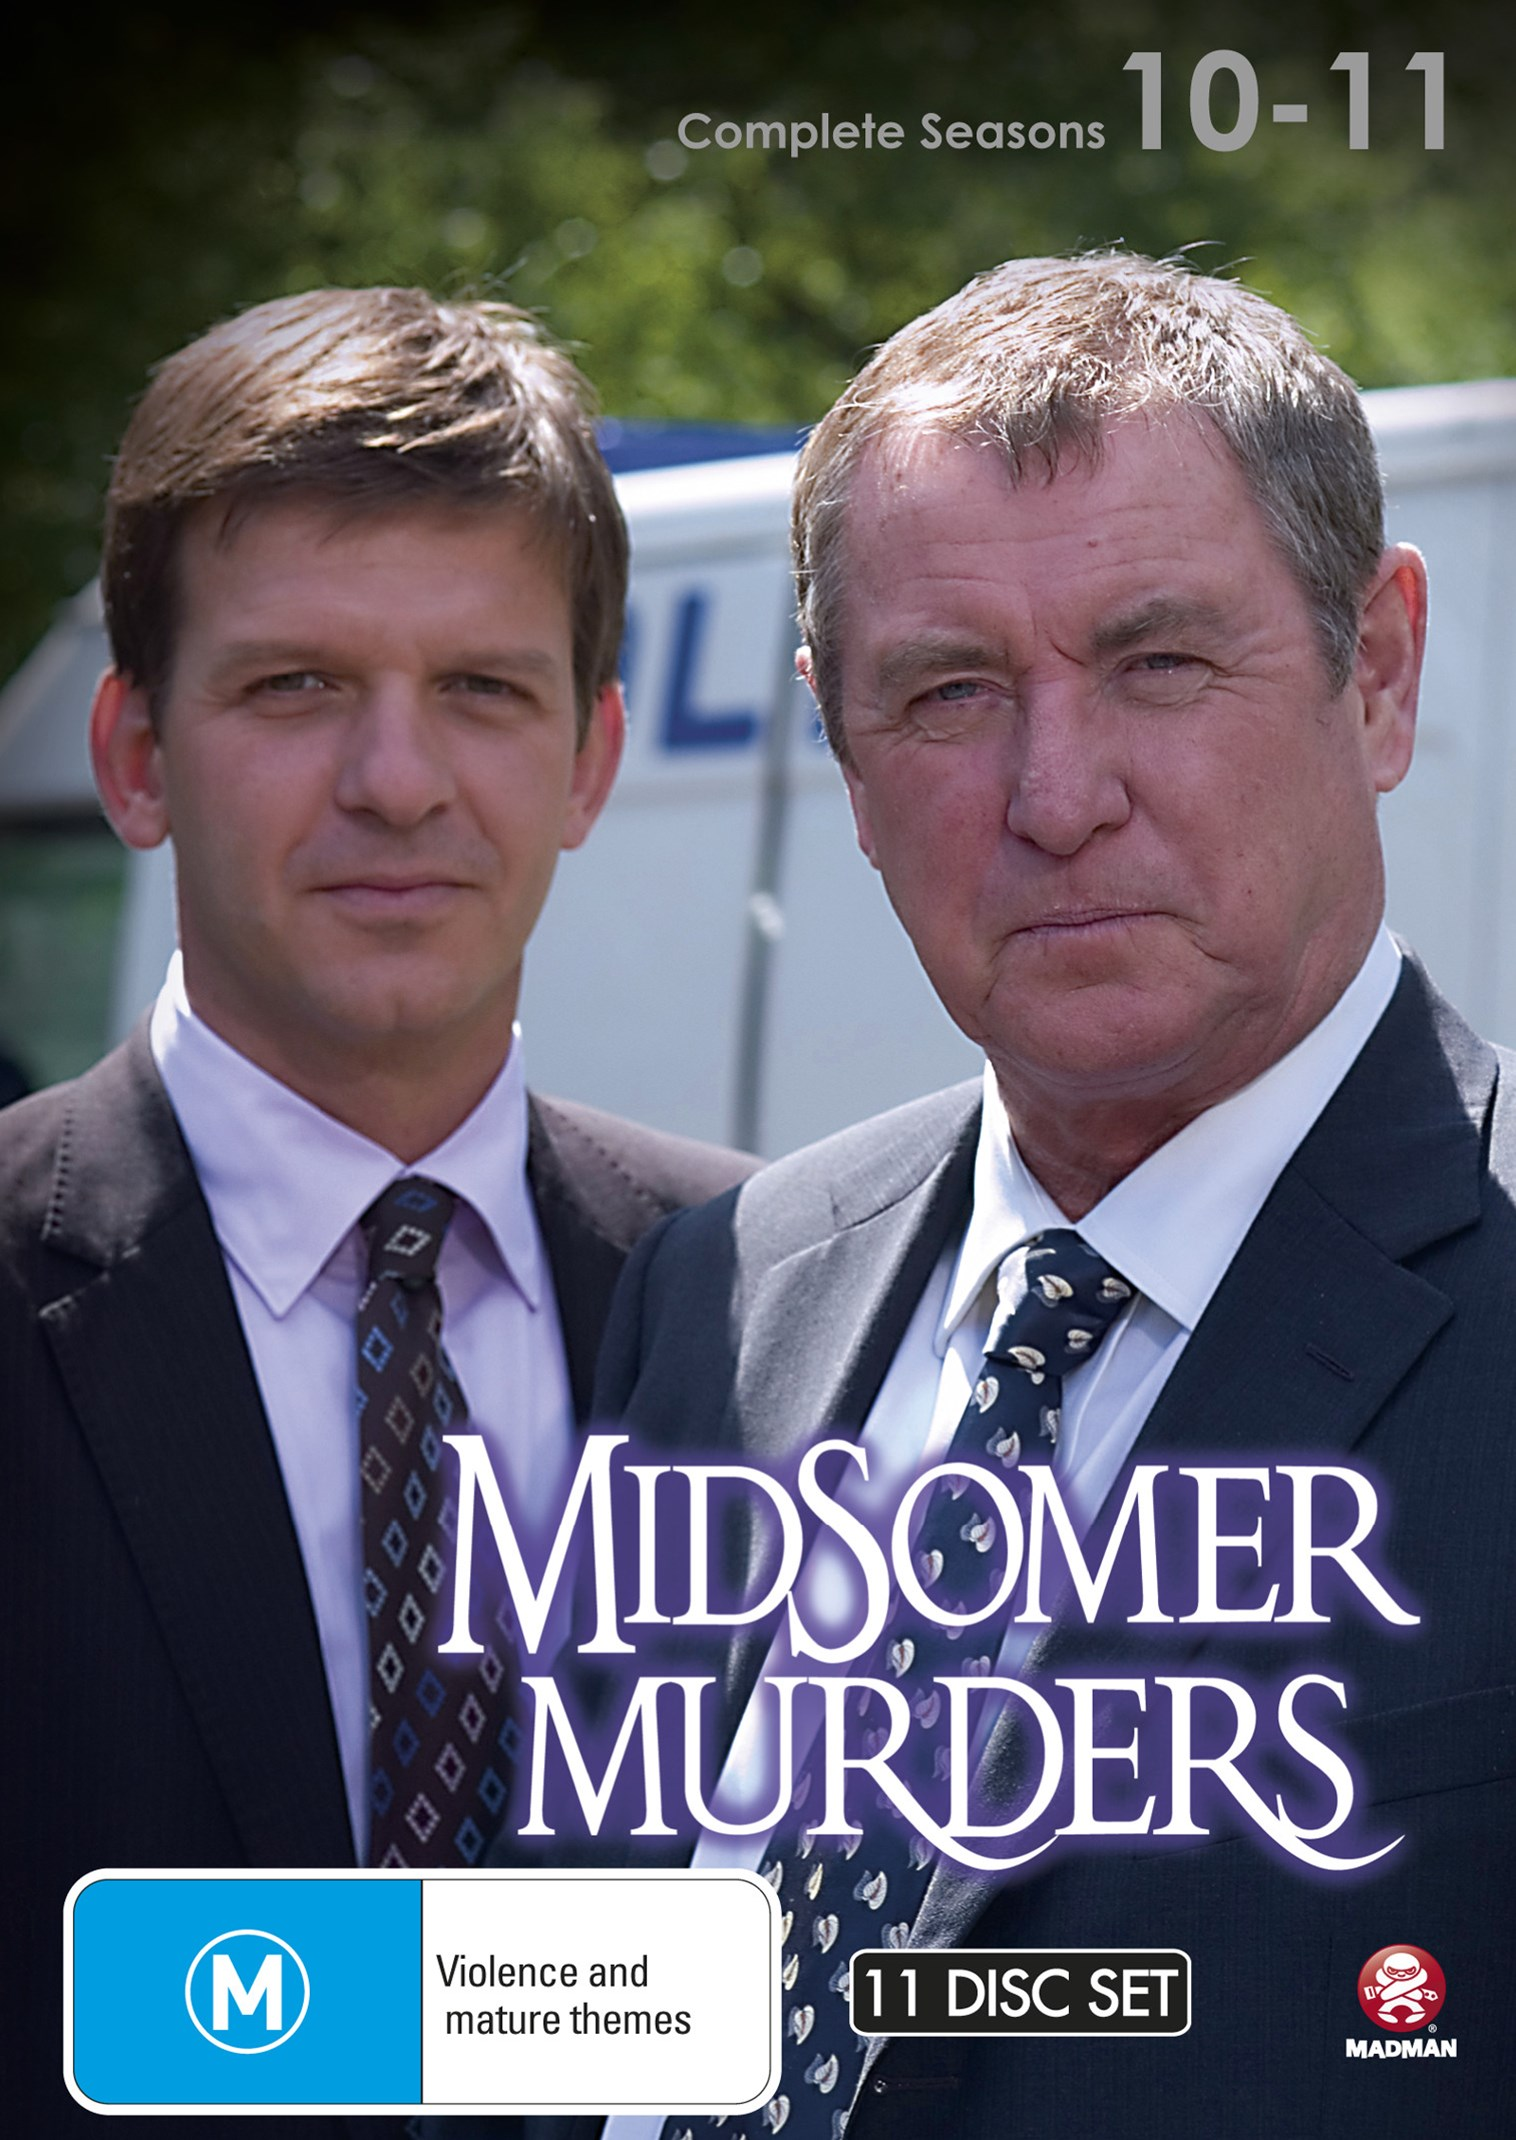 Midsomer Murders Season 10-11 Box Set (plus Christmas Special)